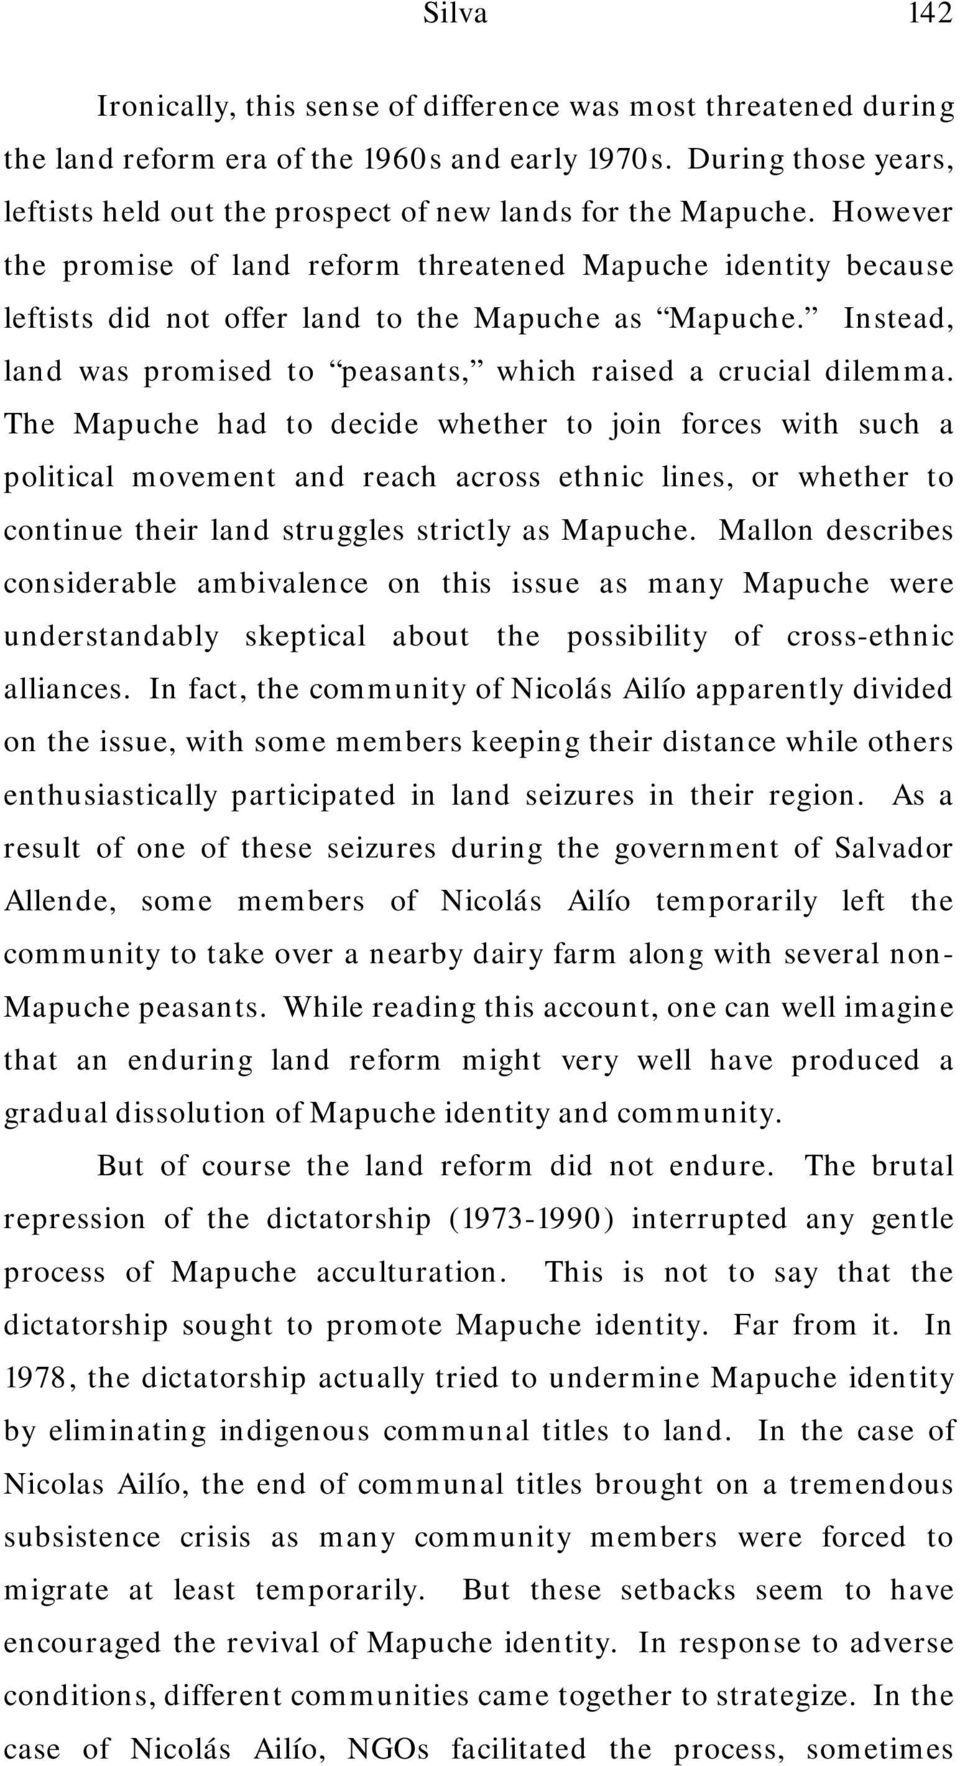 However the promise of land reform threatened Mapuche identity because leftists did not offer land to the Mapuche as Mapuche. Instead, land was promised to peasants, which raised a crucial dilemma.